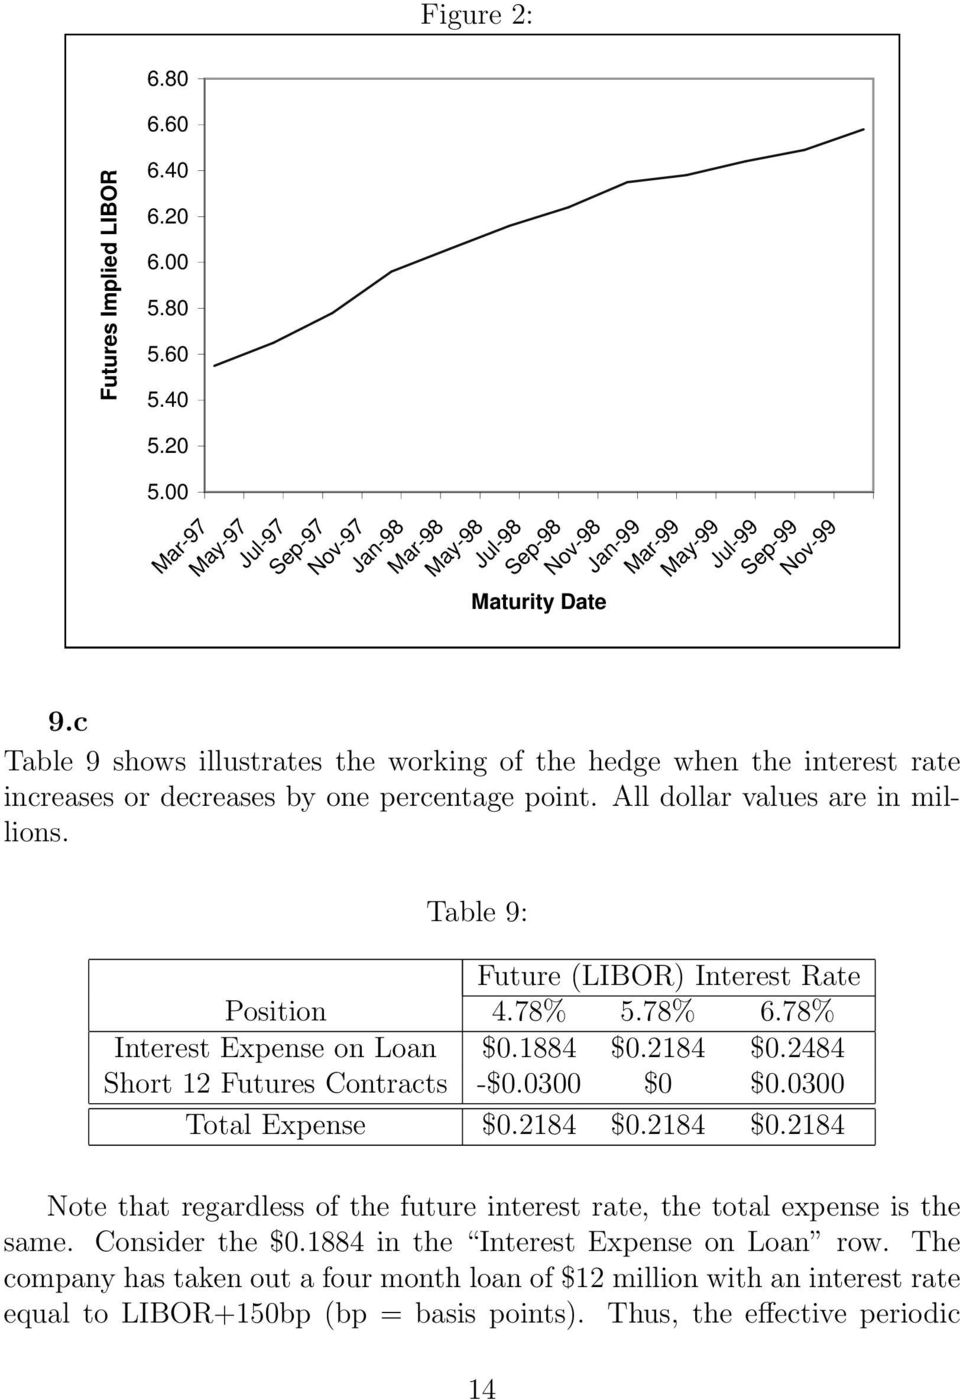 c Table 9 shows illustrates the working of the hedge when the interest rate increases or decreases by one percentage point. All dollar values are in millions.